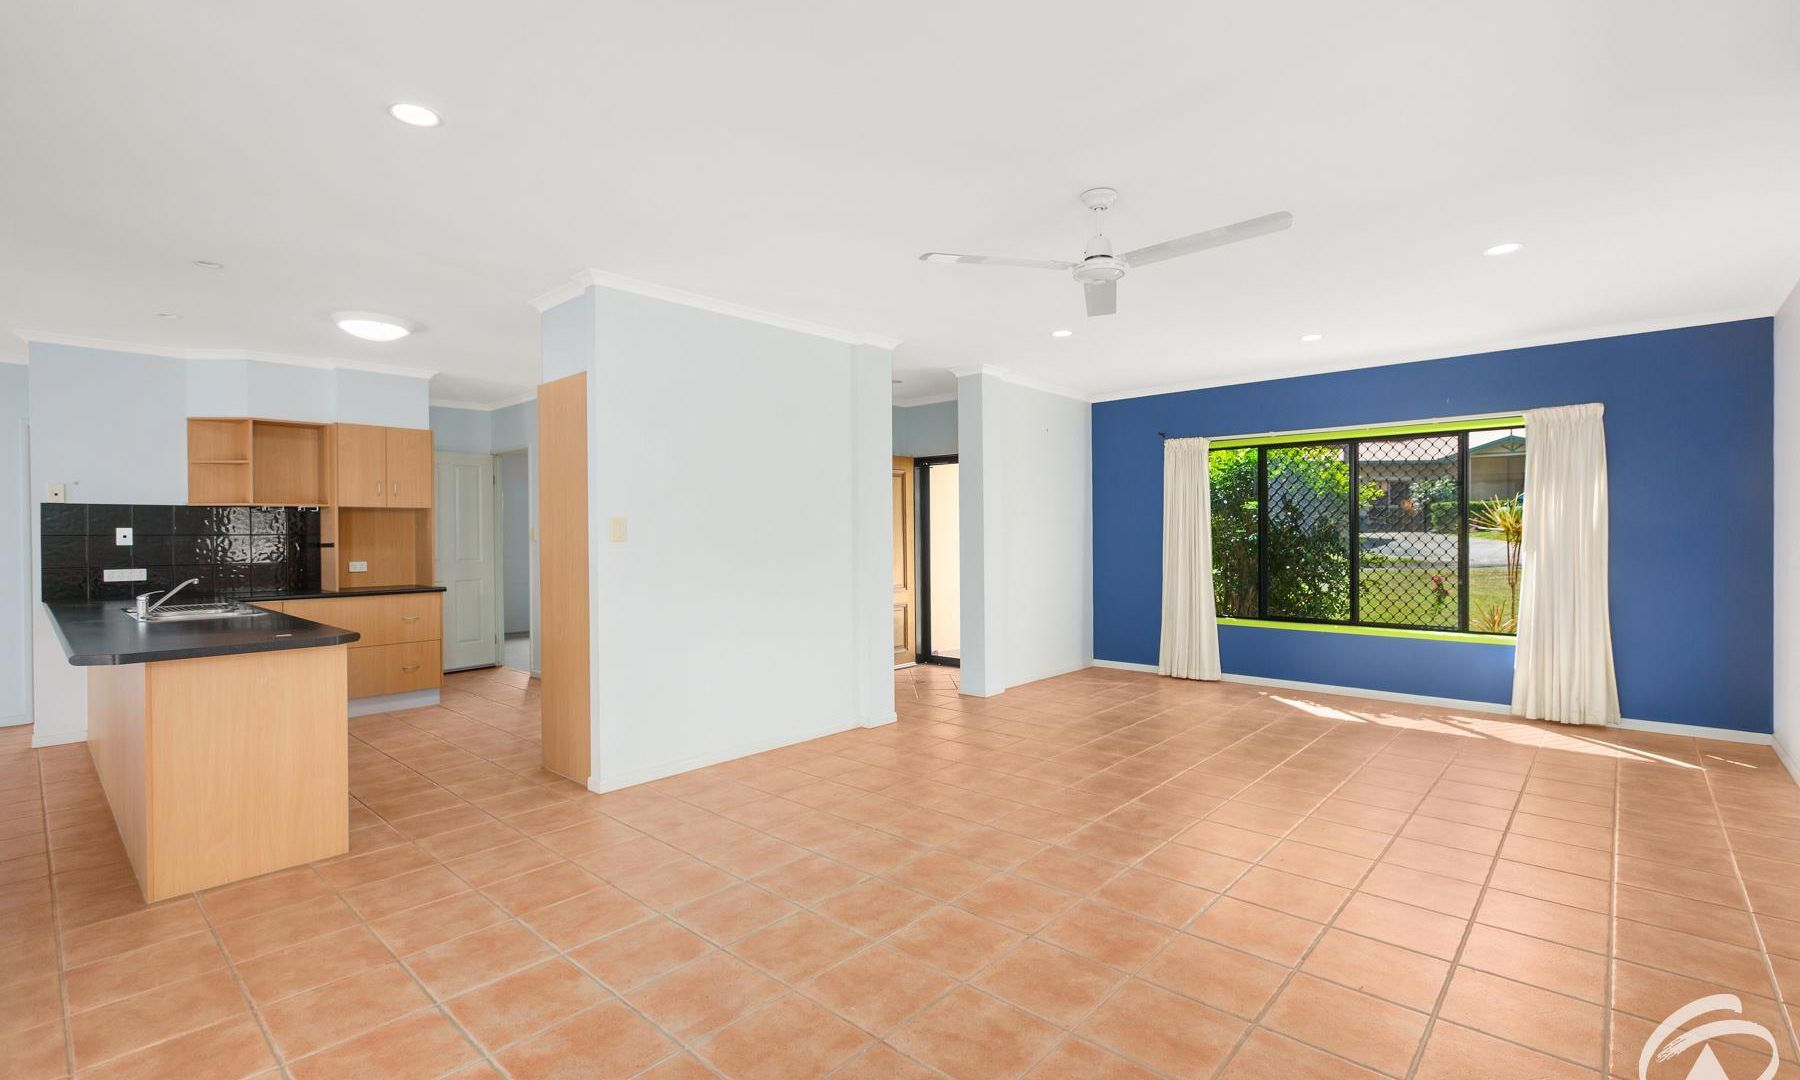 17 St Albans Close, Brinsmead QLD 4870, Image 2